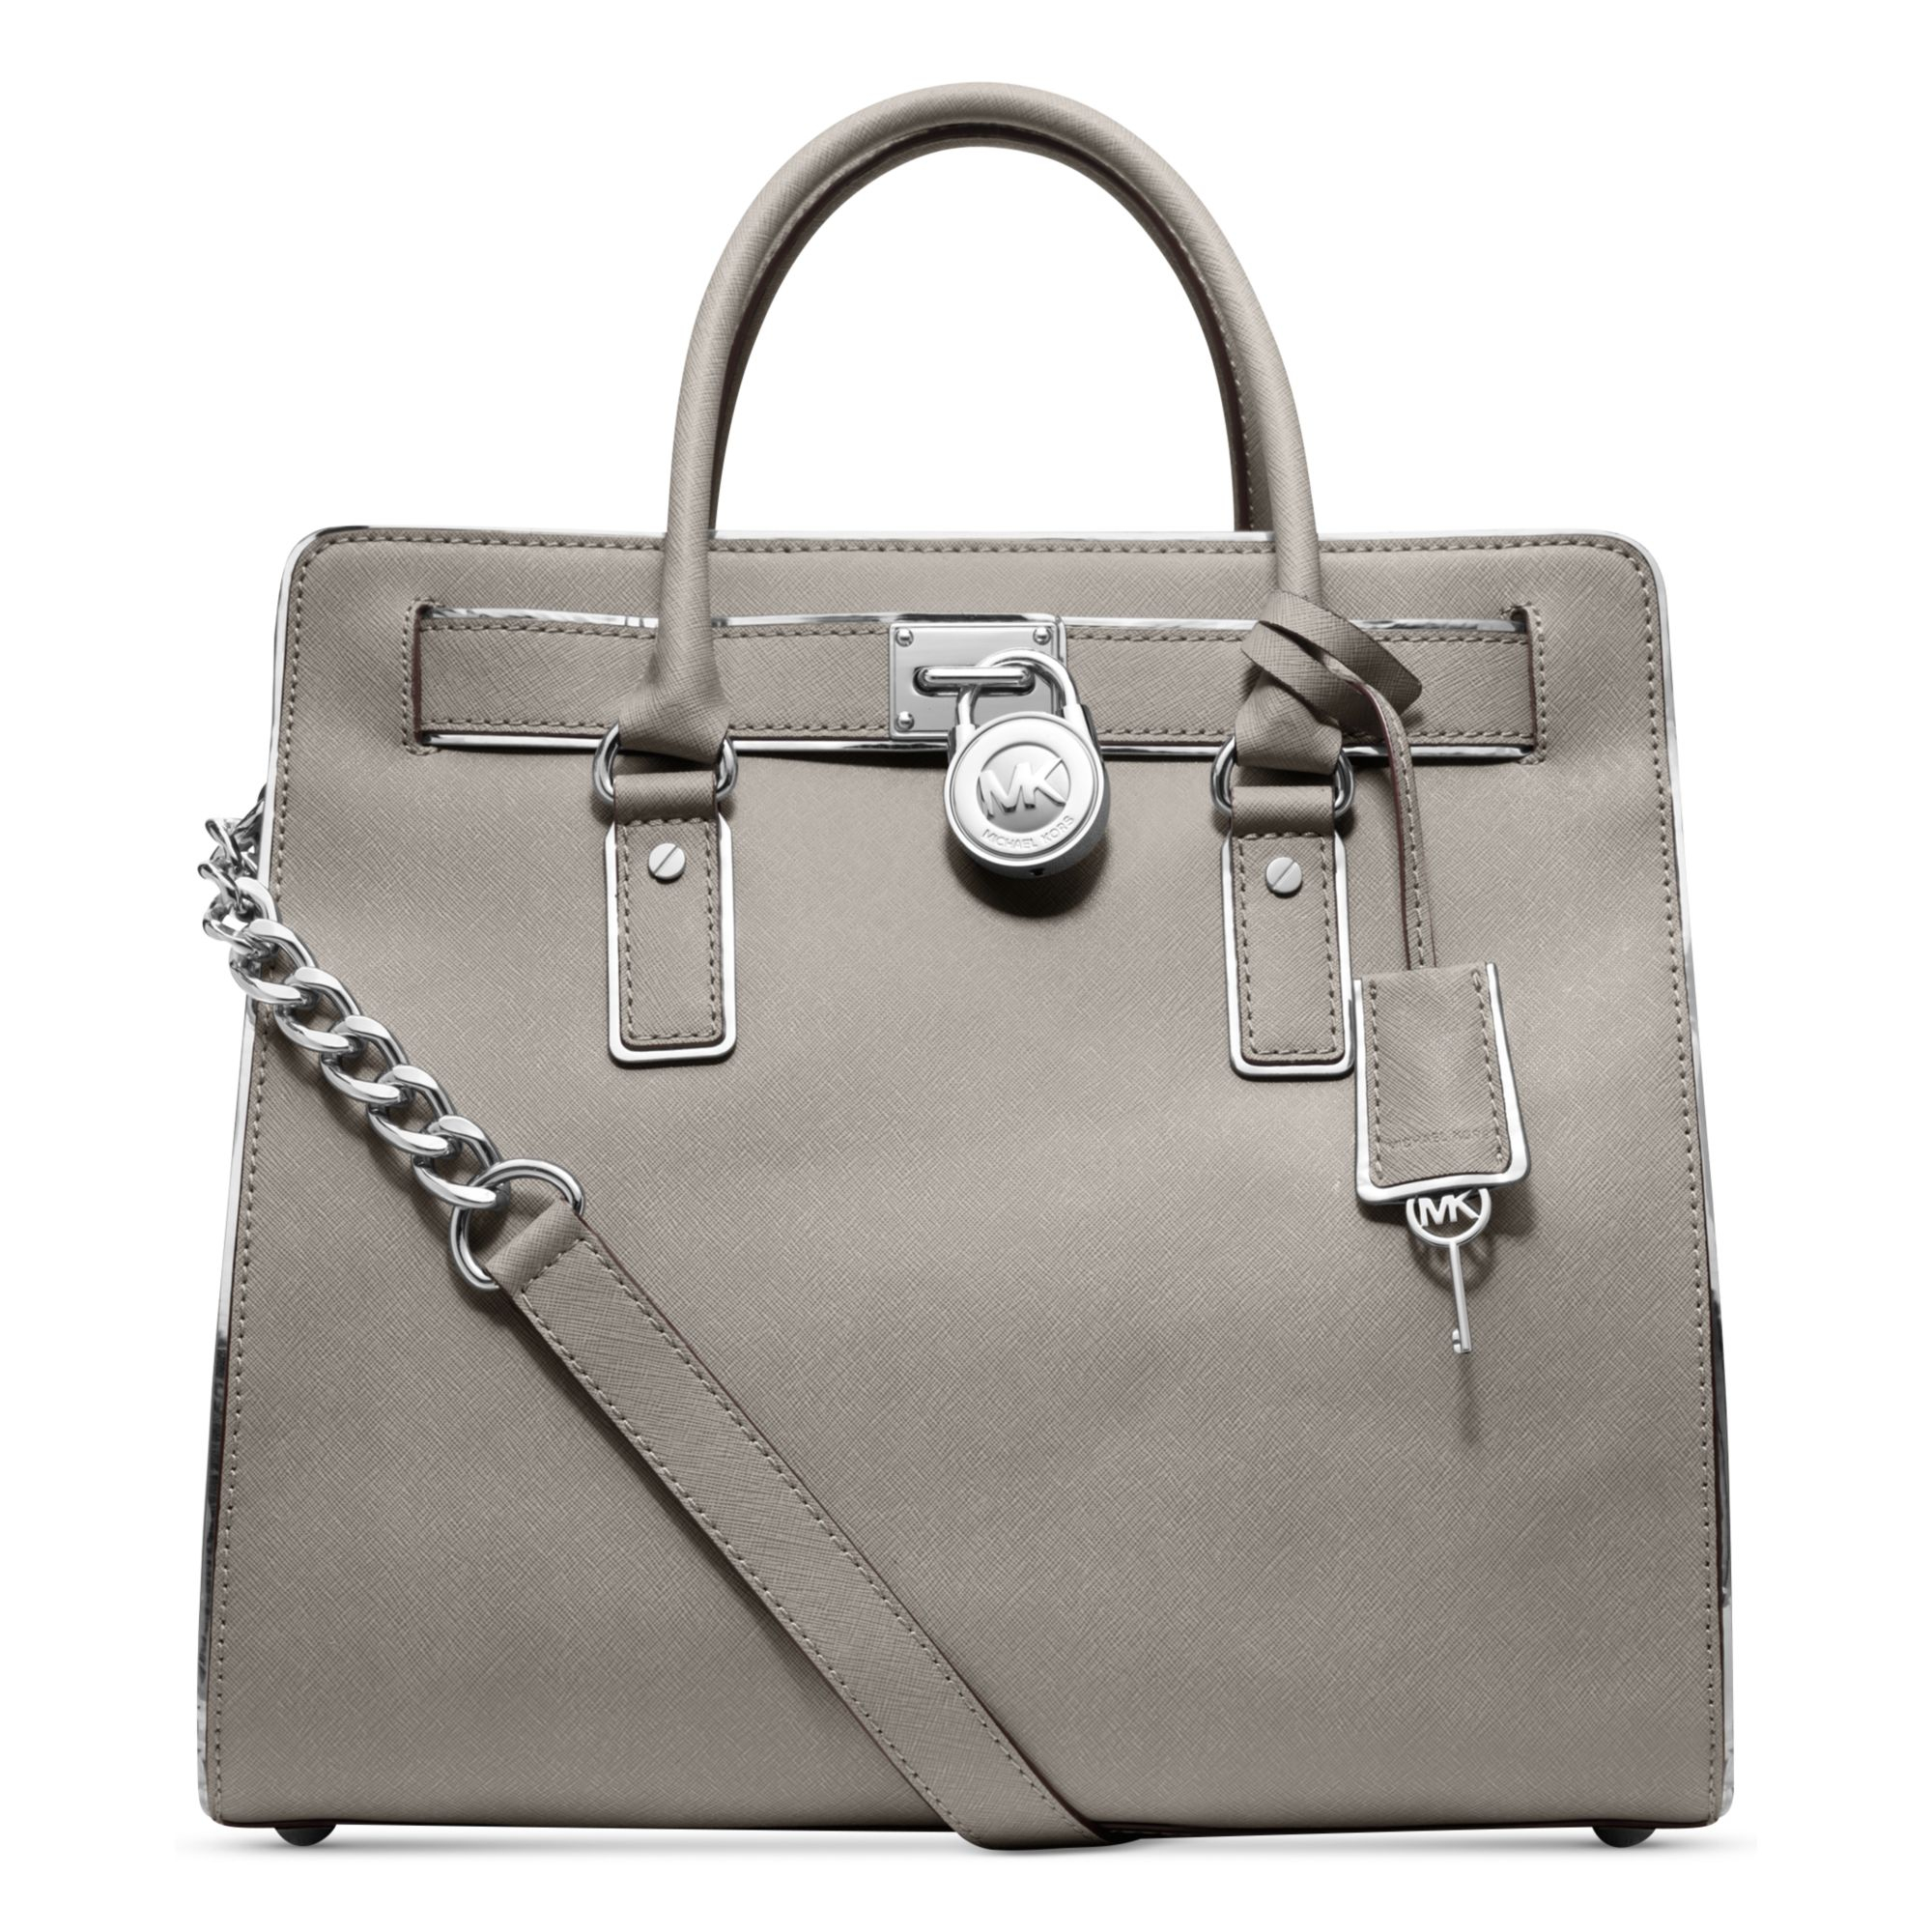 lyst michael kors hamilton specchio large north south tote in gray. Black Bedroom Furniture Sets. Home Design Ideas